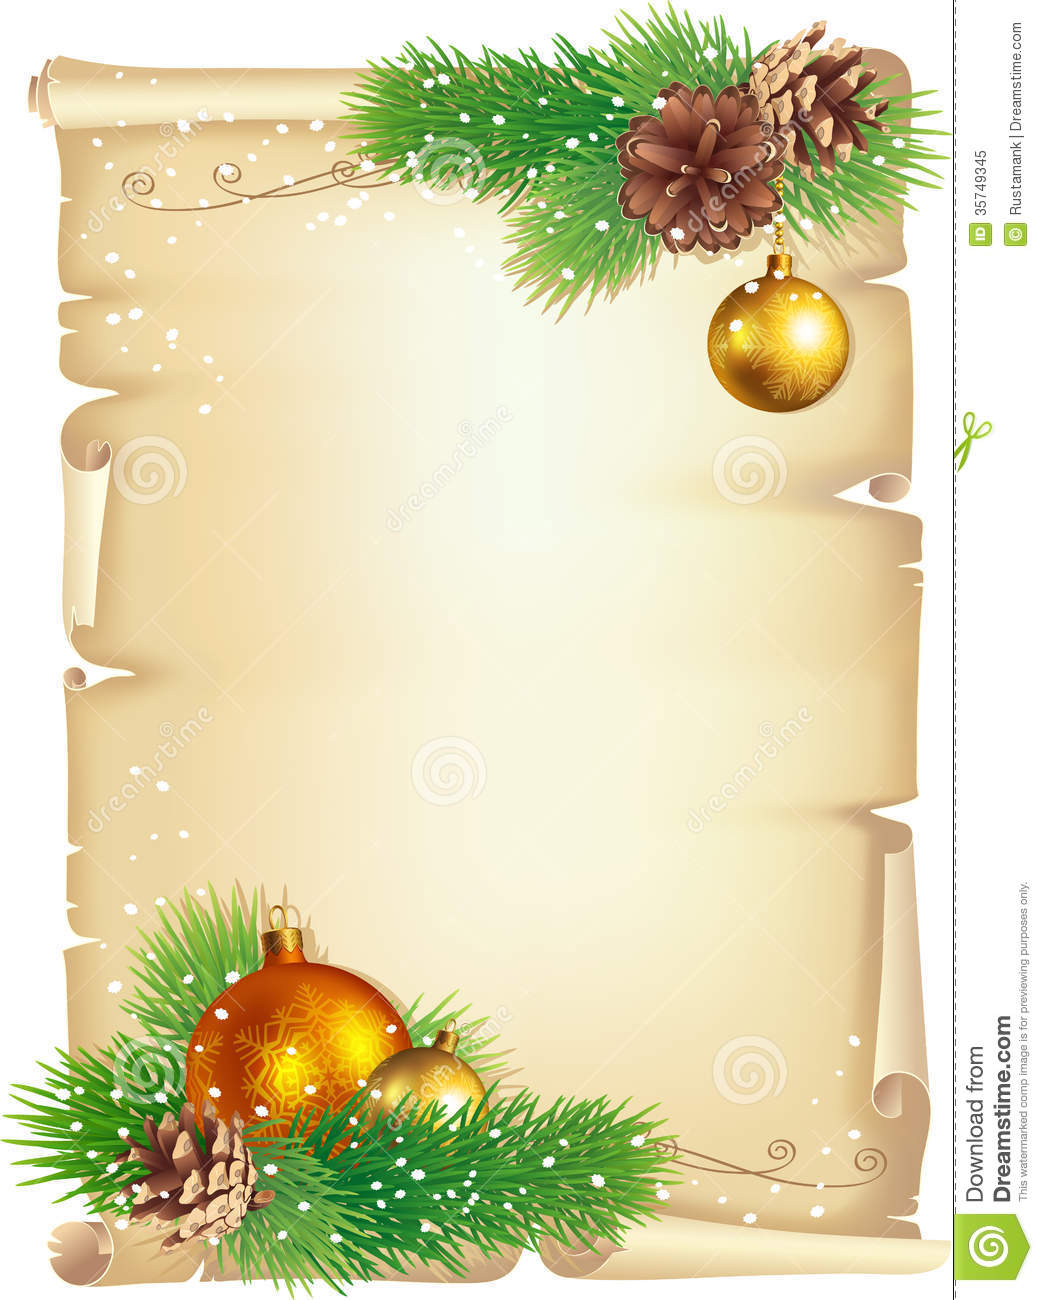 Christmas Background Stock Vector Illustration Of Ball